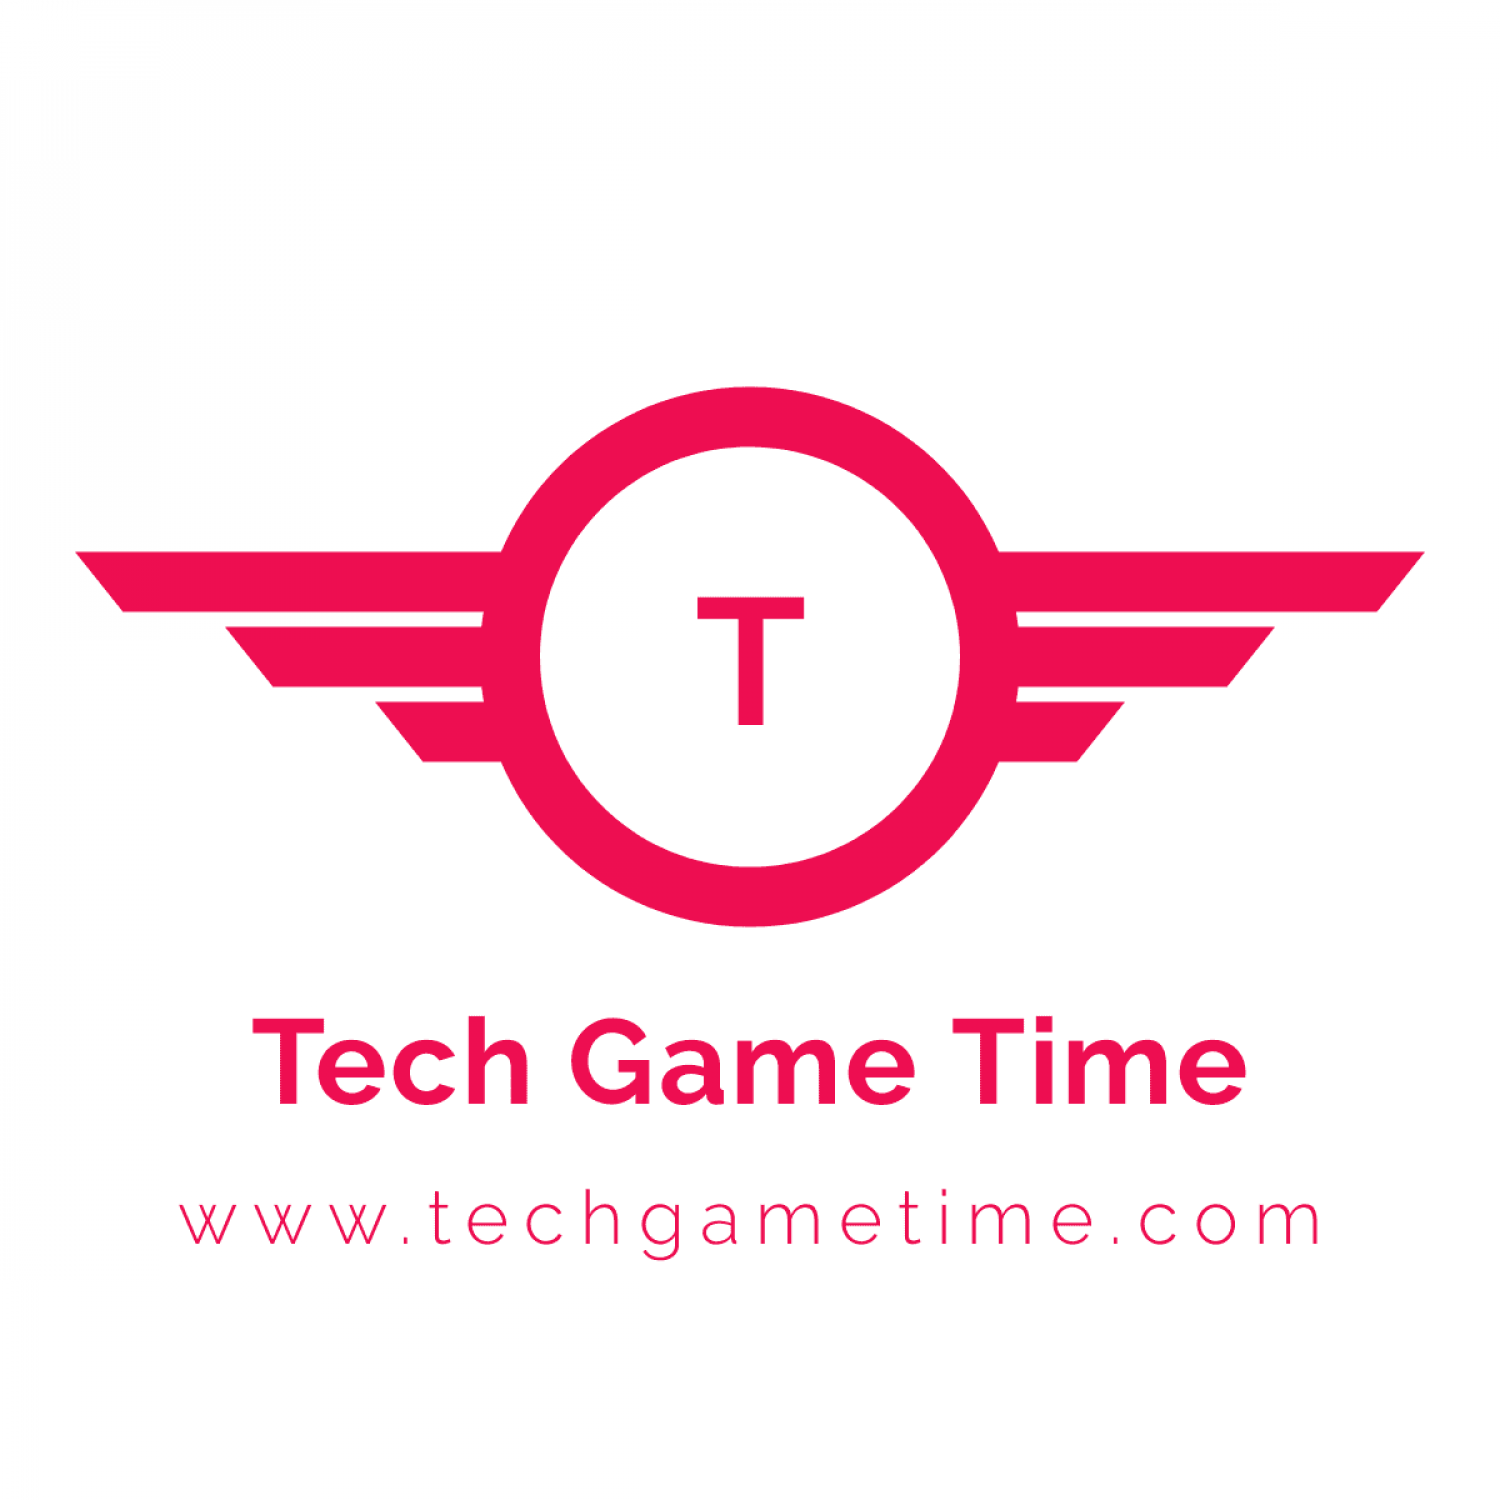 Tech Game Time Infographic